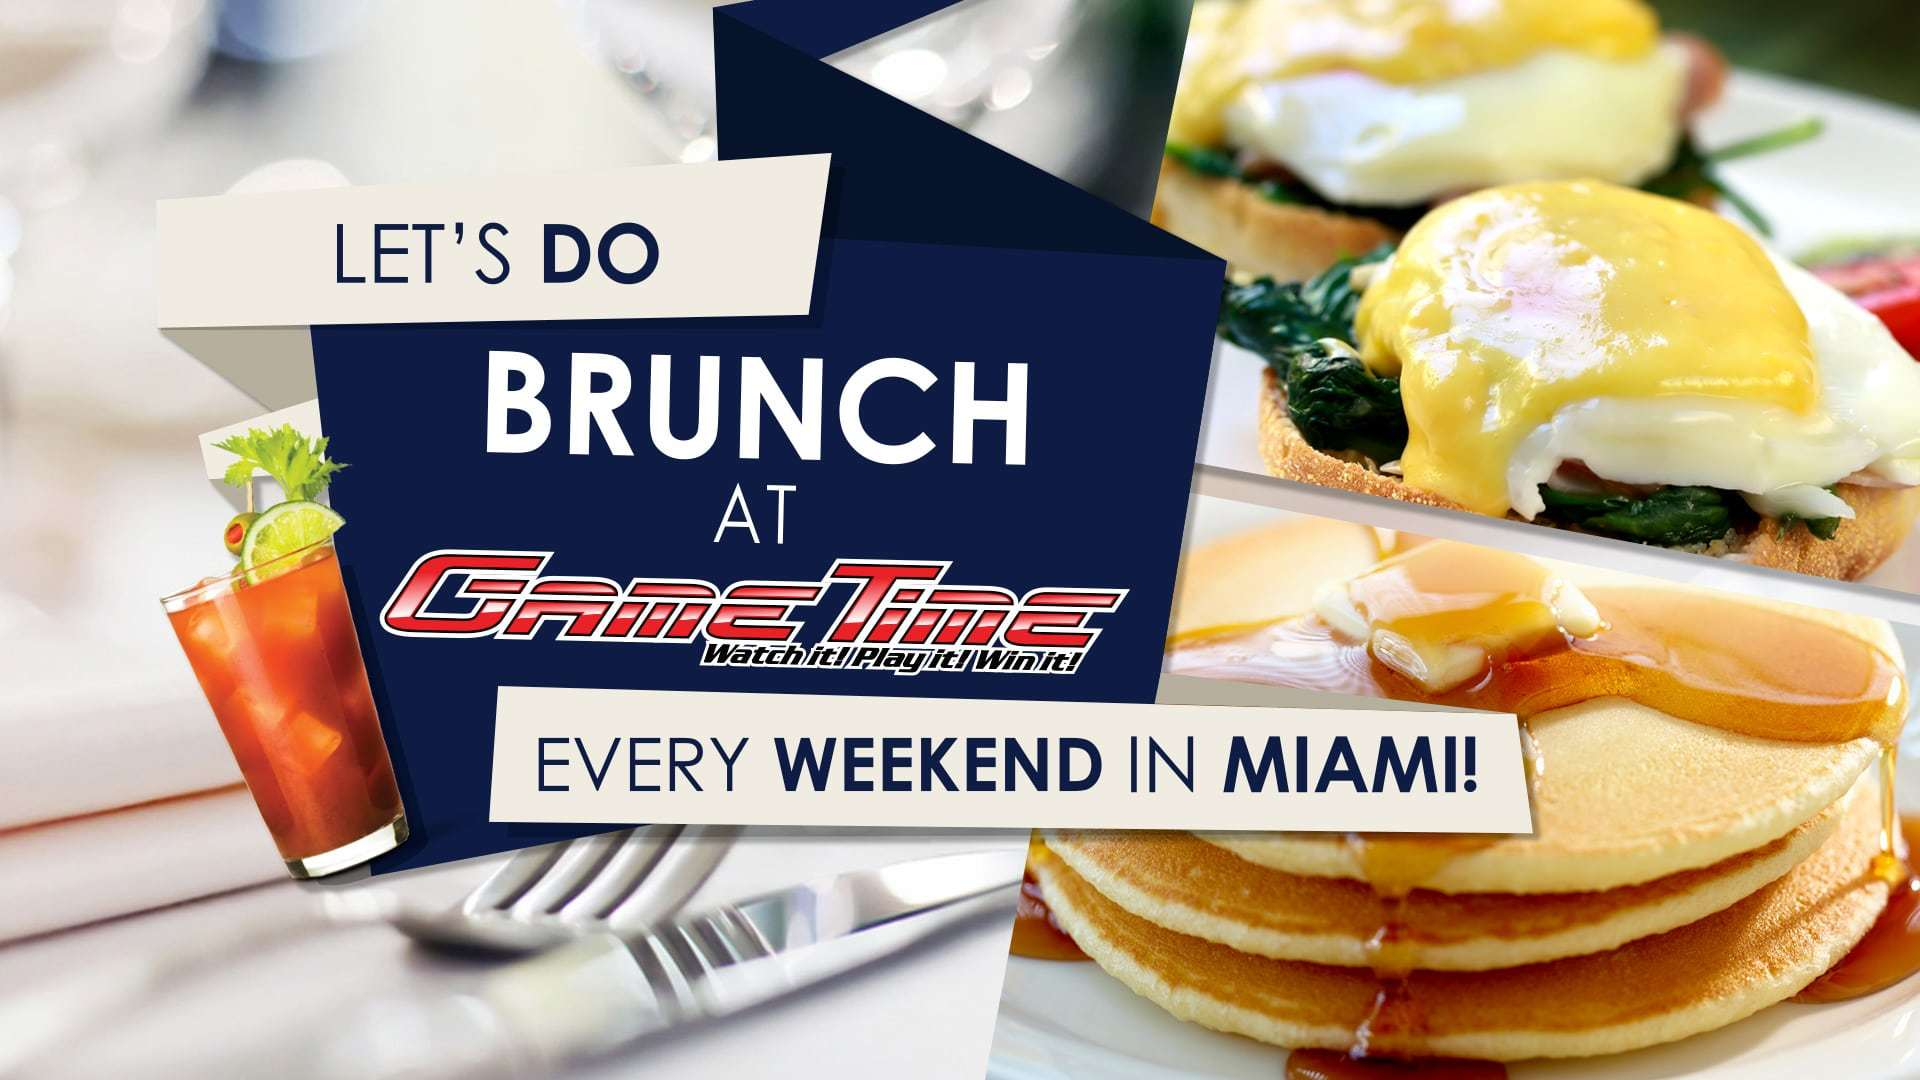 eat-dine-enjoy-brunch-lunch-breakfast-at-gametime-every-weekend-in-miami